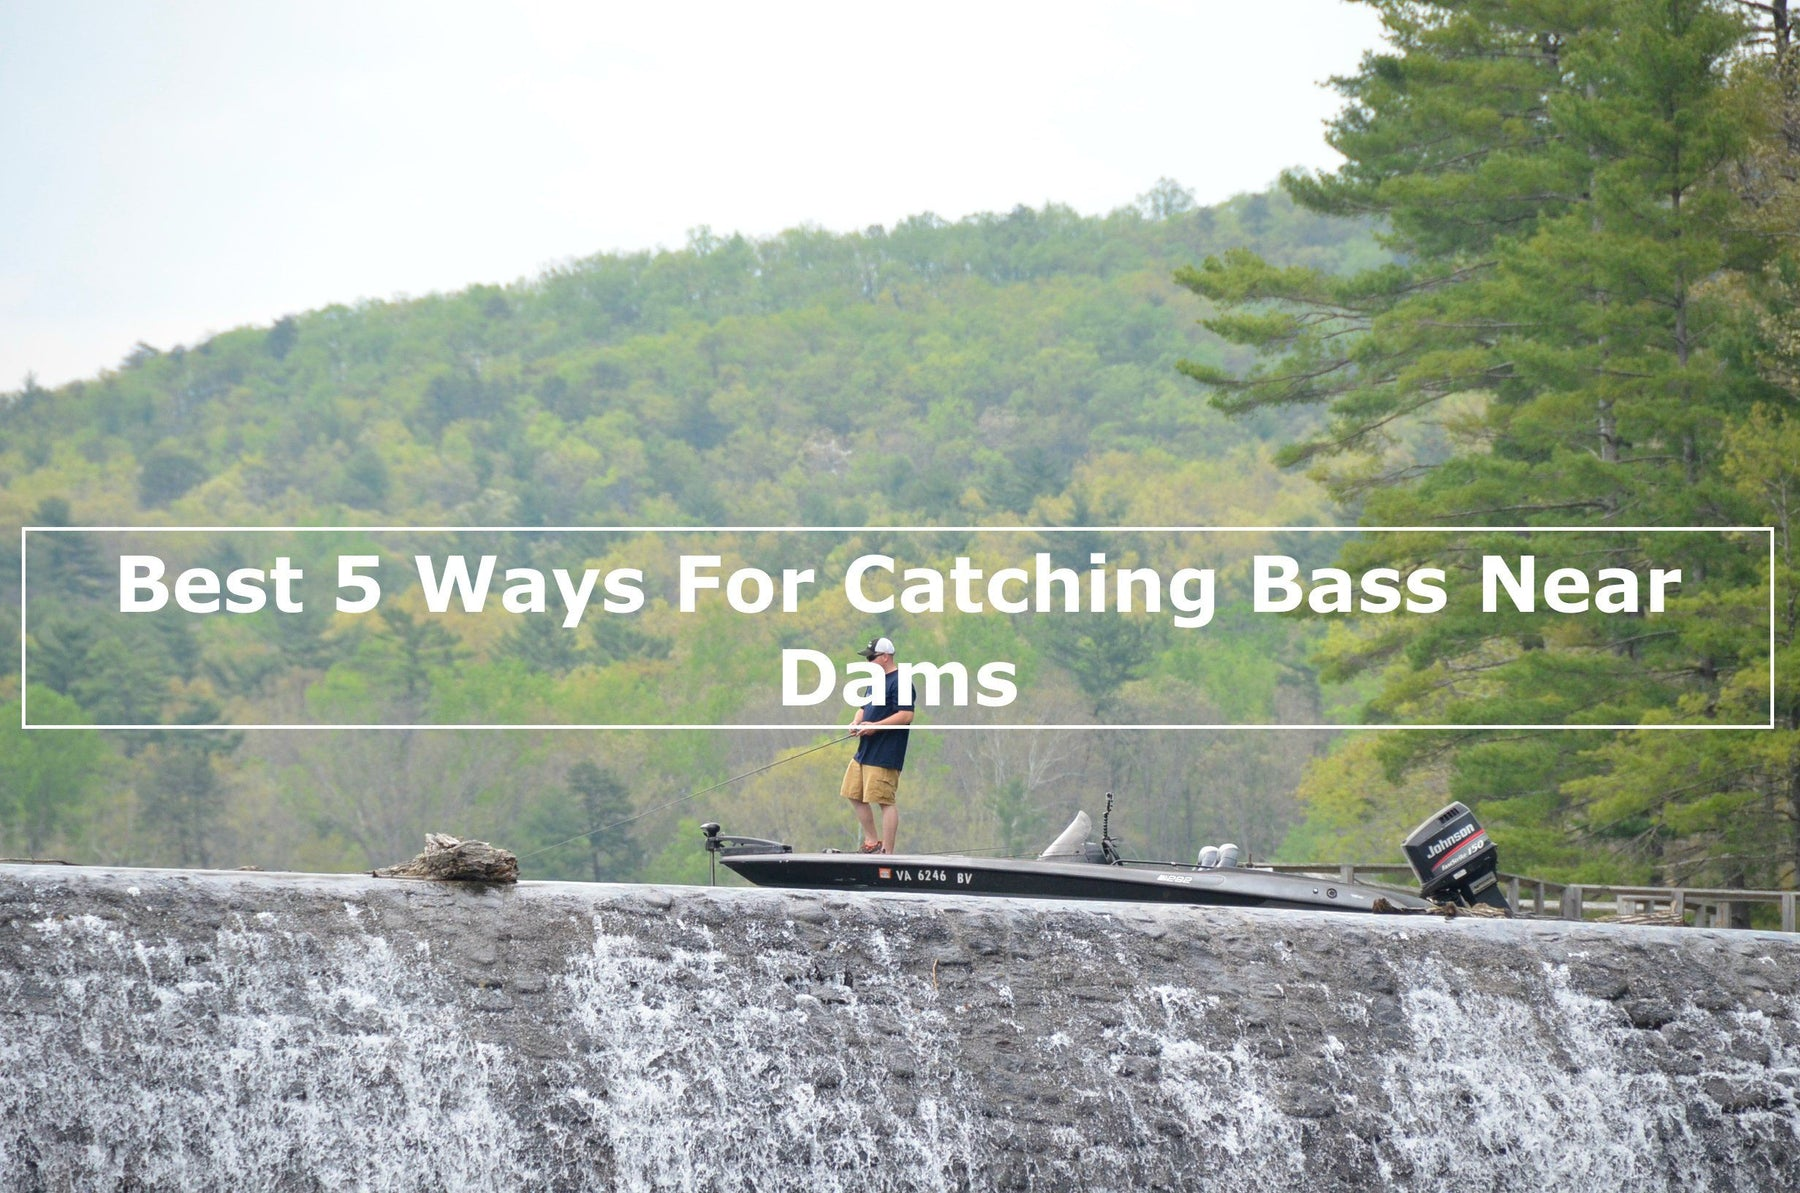 Best 5 Ways For Catching Bass Near Dams